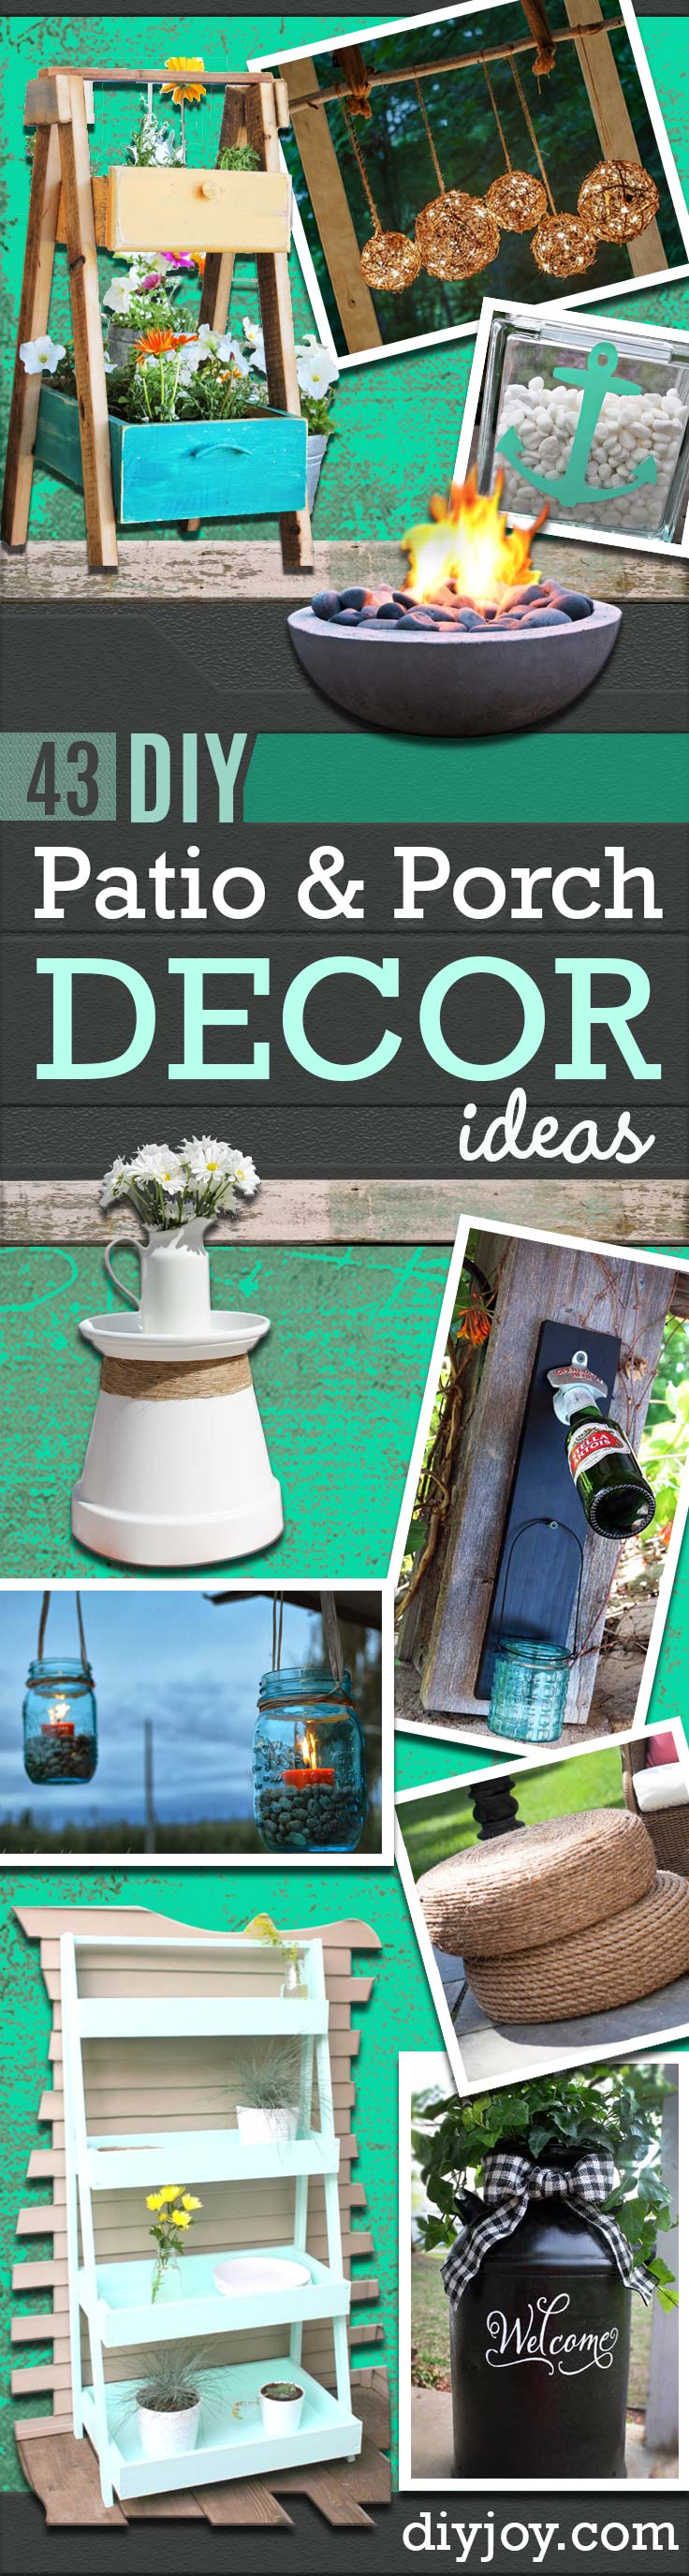 DIY Porch and Patio Ideas - Decor Projects and Furniture Tutorials You Can Build for the Outdoors -Swings, Bench, Cushions, Chairs, Daybeds and Pallet Signs